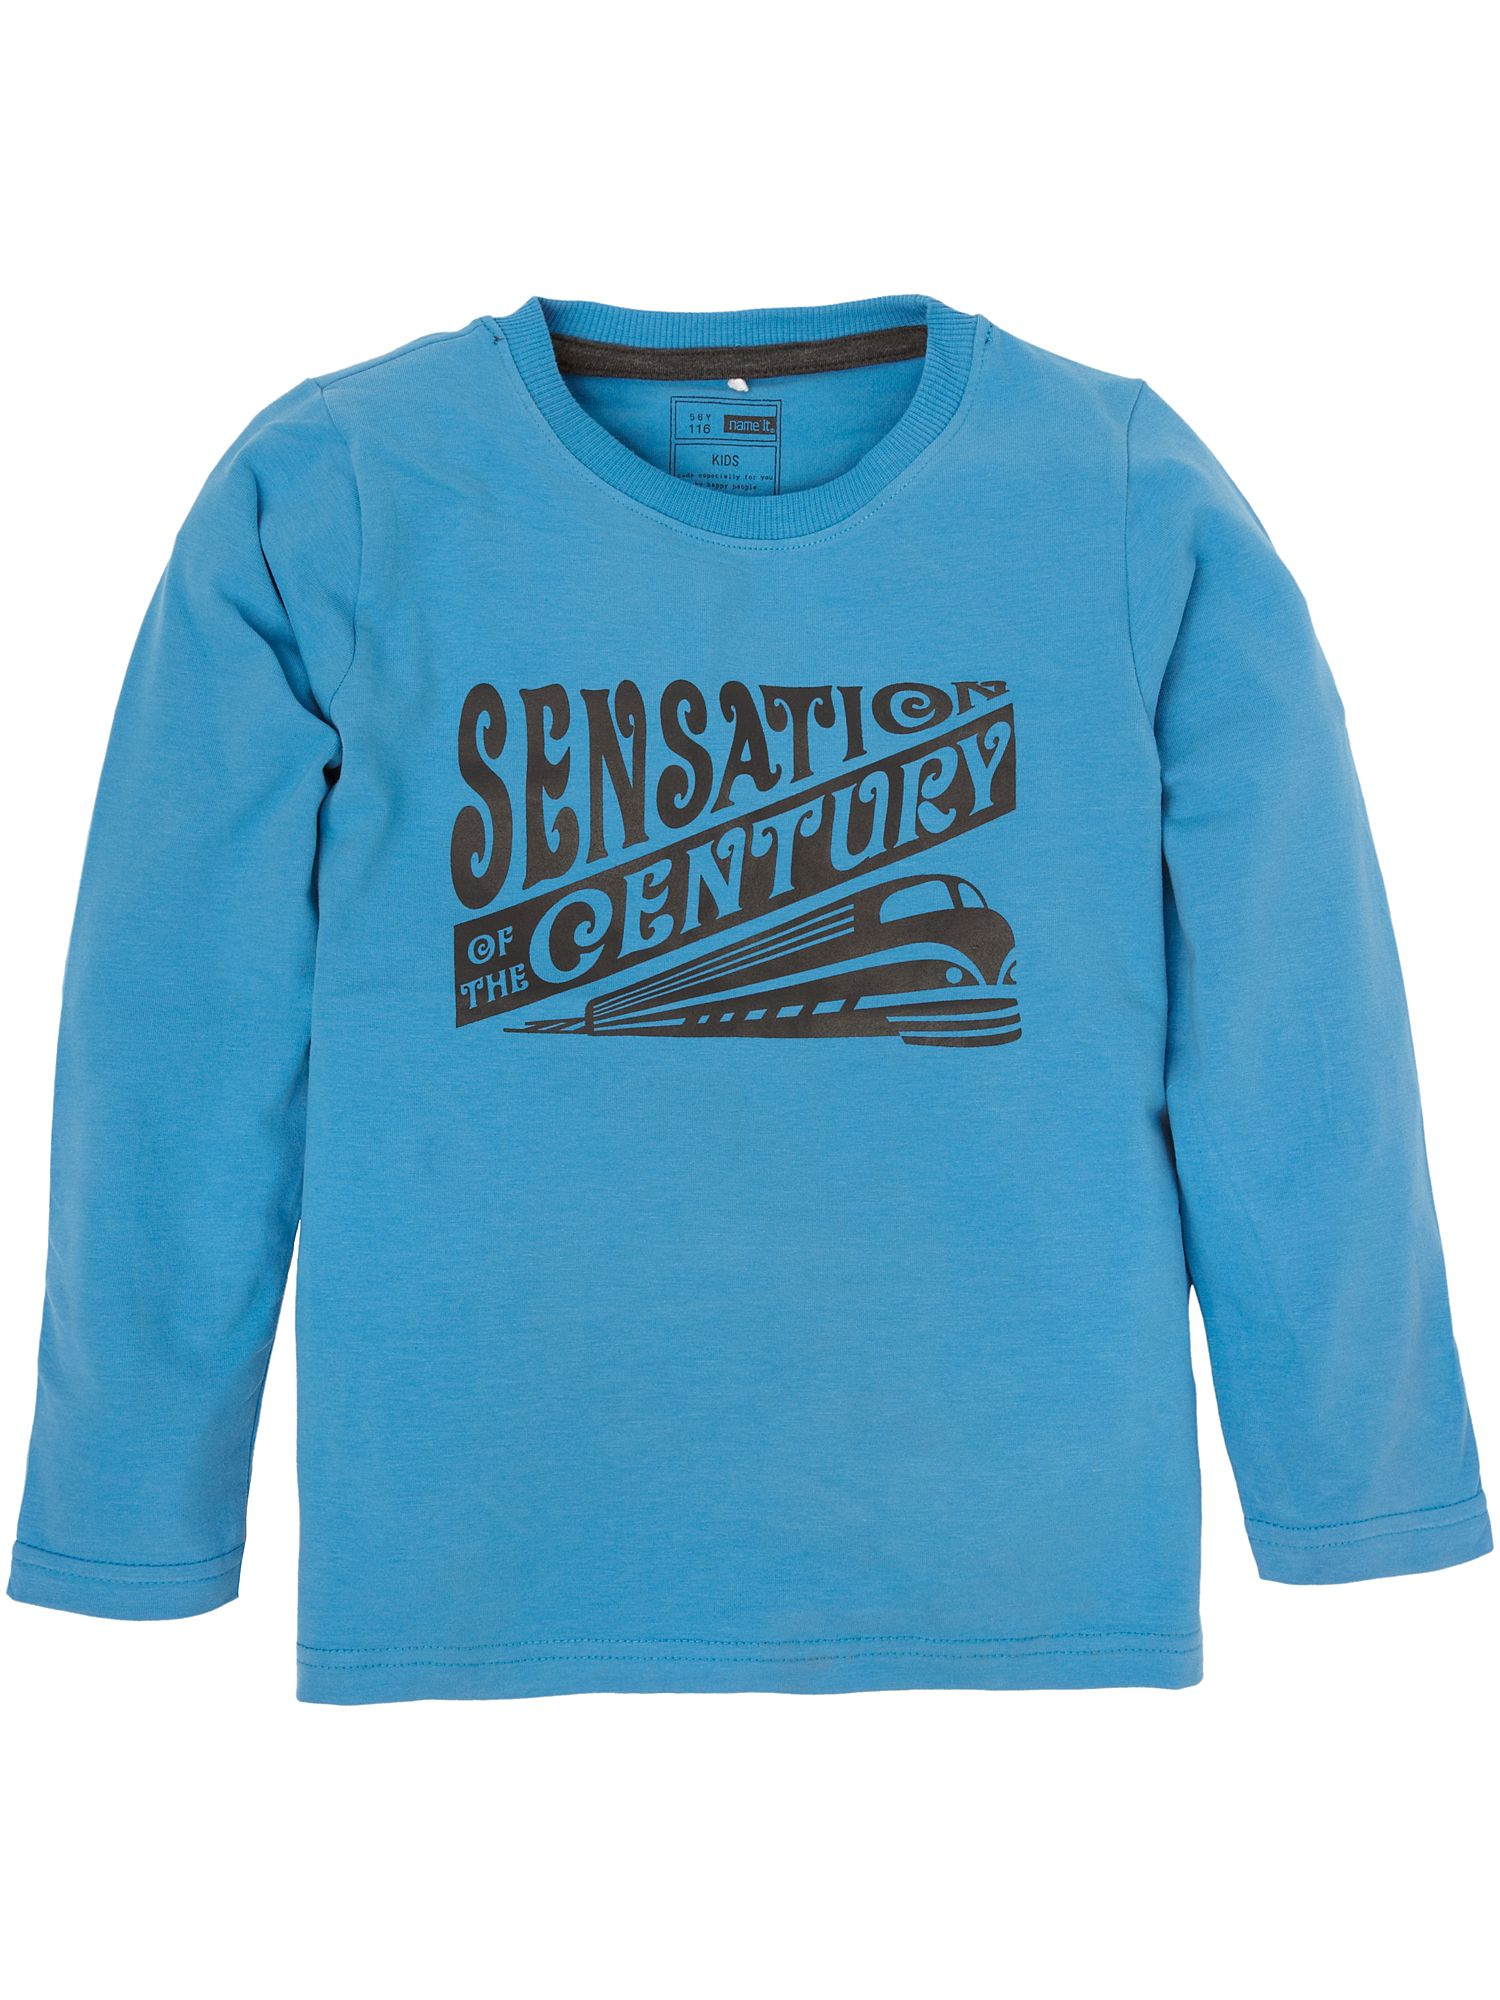 Name It Long-sleeved sensation century print T-shirt Blue product image